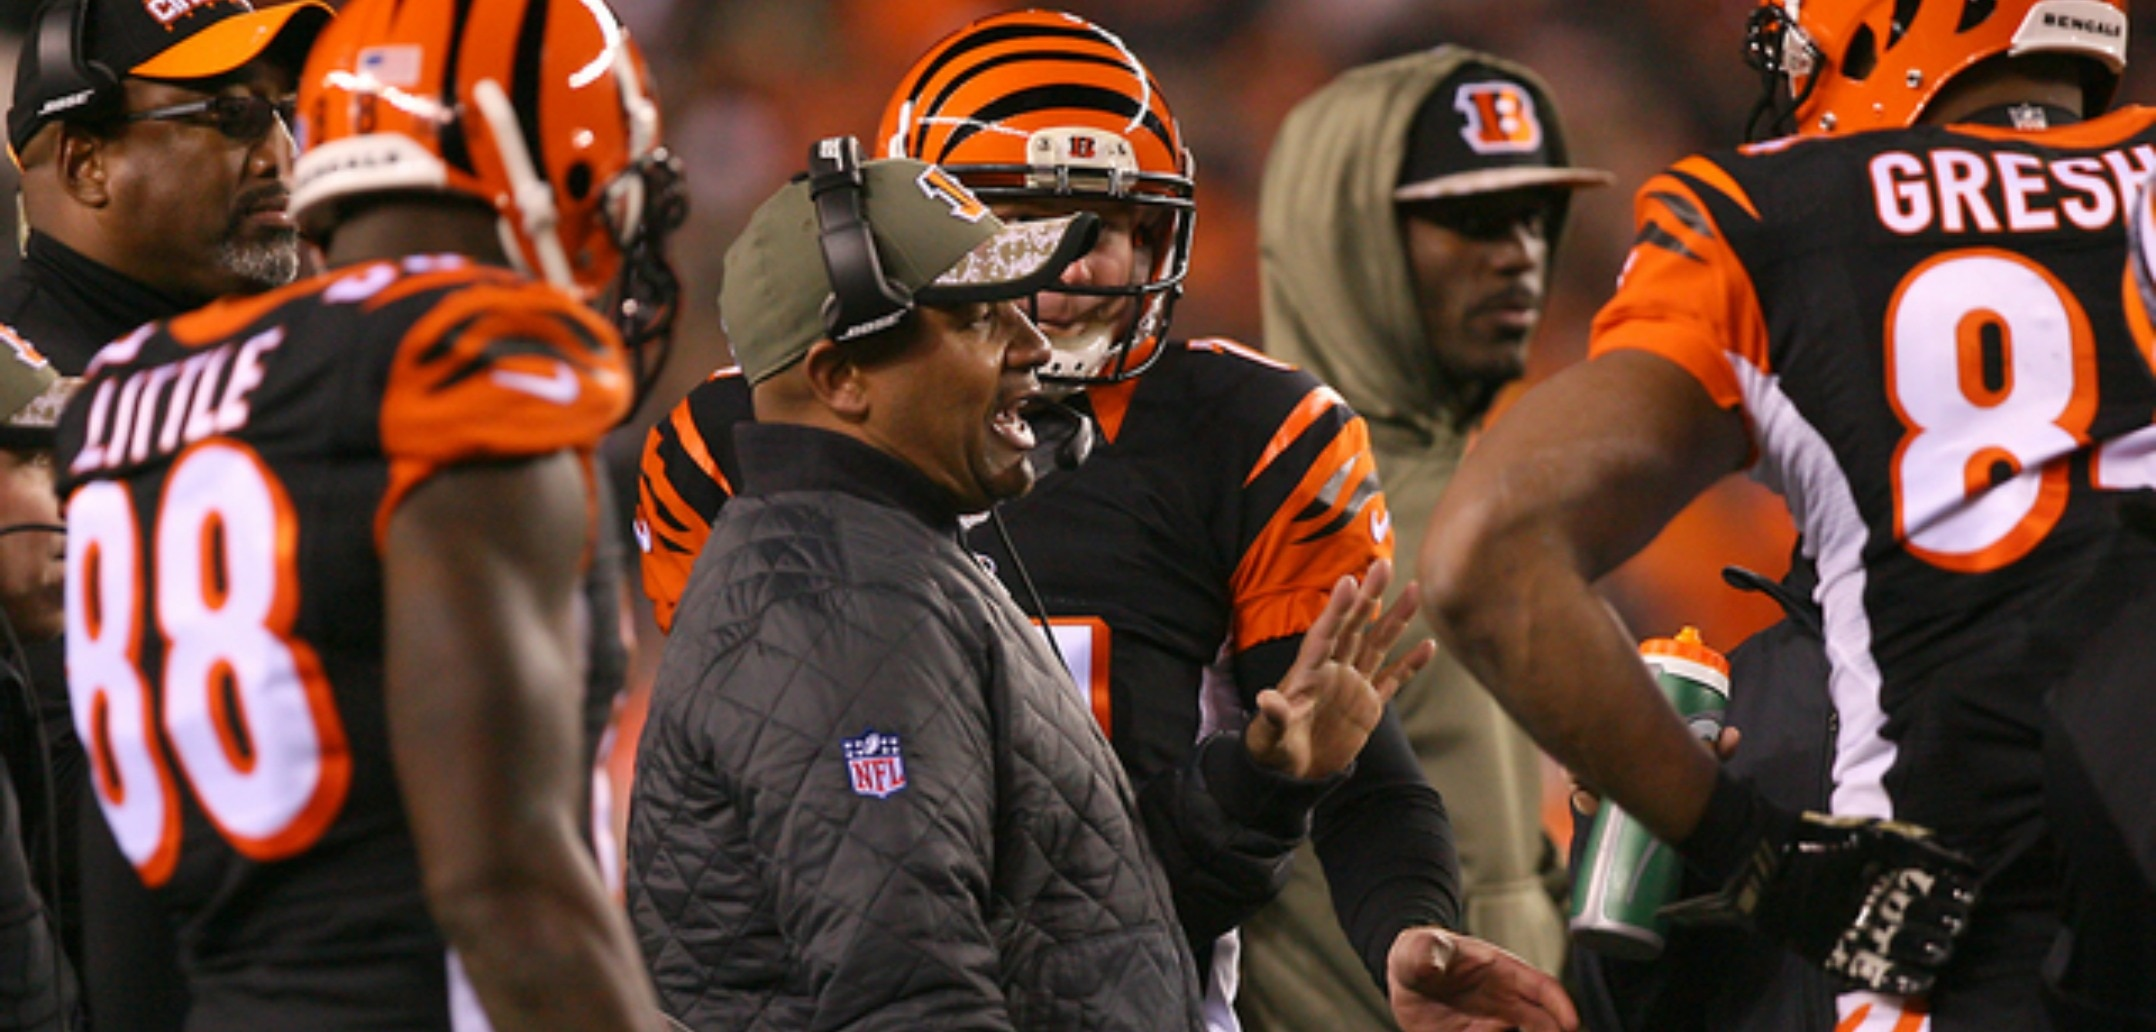 Courtesy of CBS Sports: Coming off a stinker of a game, the Bengals need a win big time.